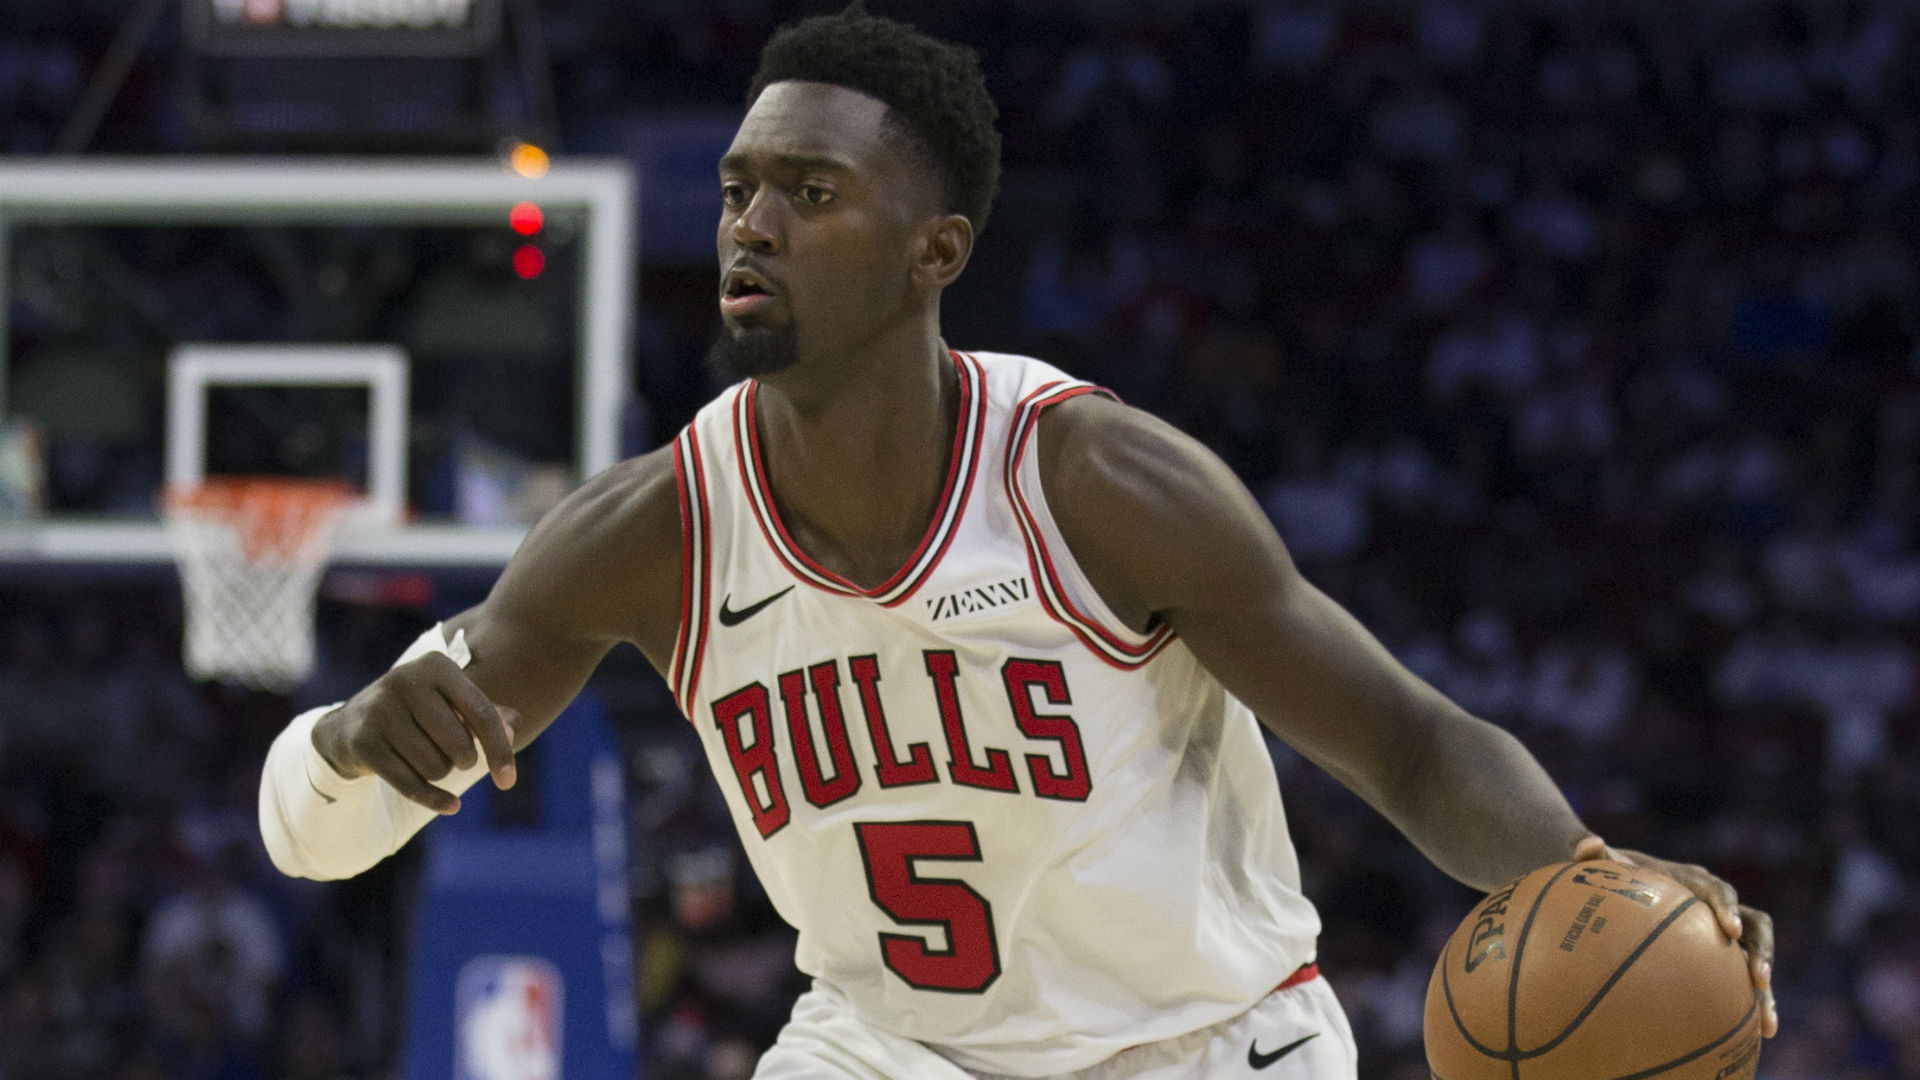 Bulls' Bobby Portis thinks Warriors' Kevin Durant injured him on purpose